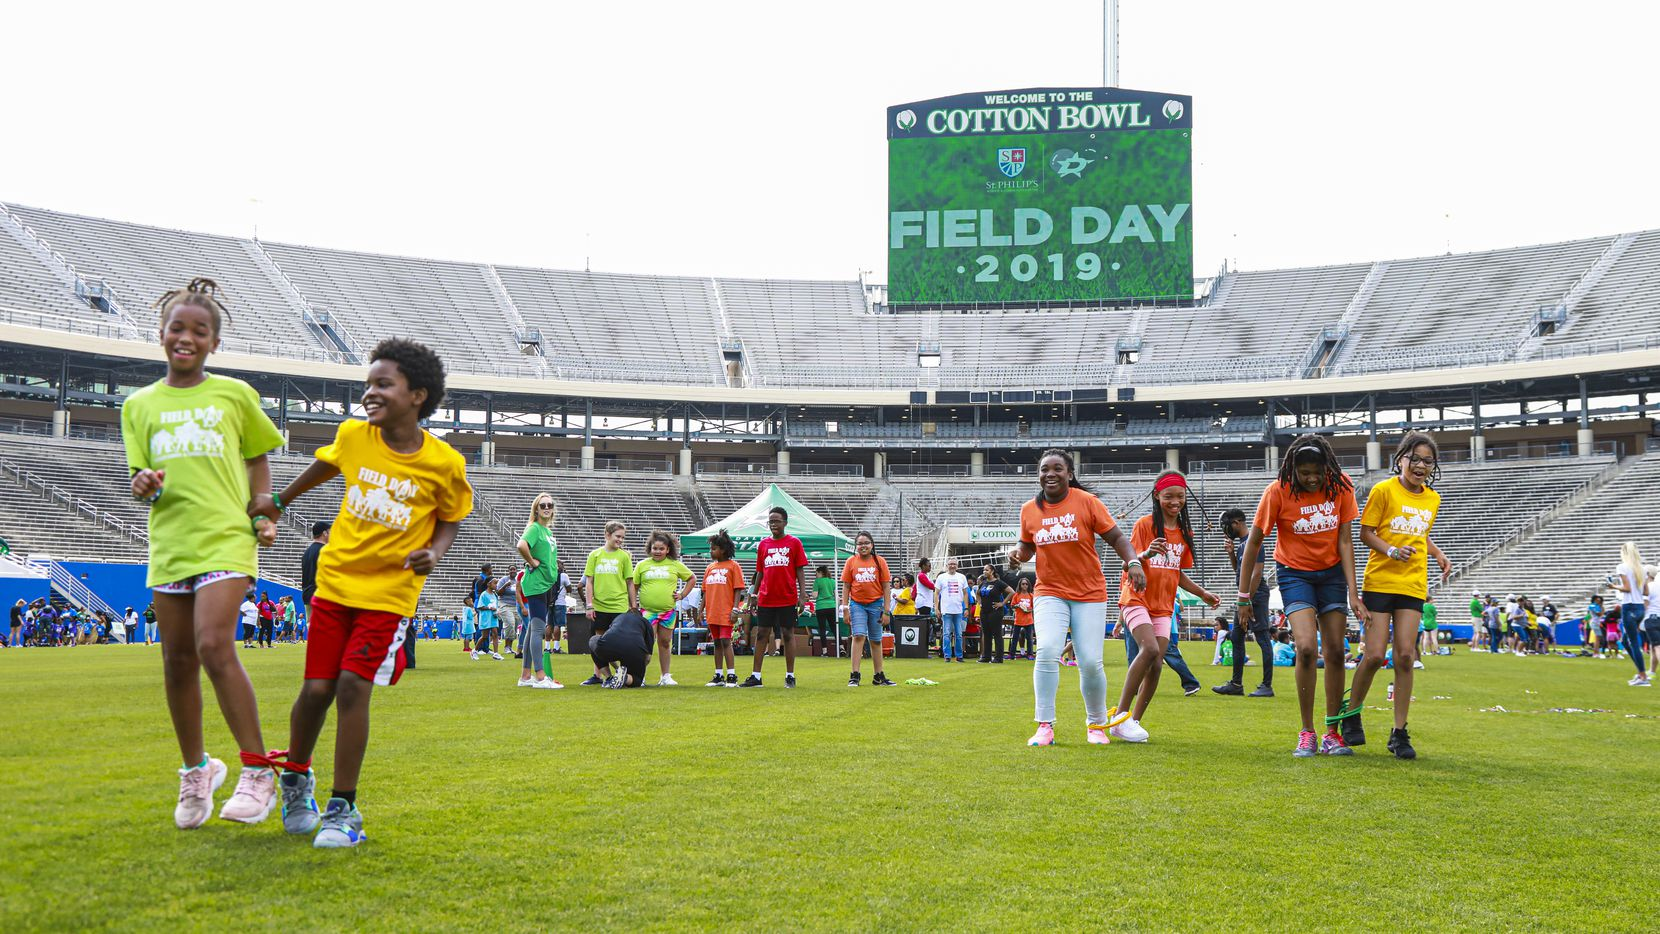 Students competed in 2019 as the Dallas Stars Foundation hosted the annual Field Day for St. Philip's School and Community Center at the Cotton Bowl. The event was part of the team's Legacy Project for the 2020 Bridgestone NHL Winter Classic.